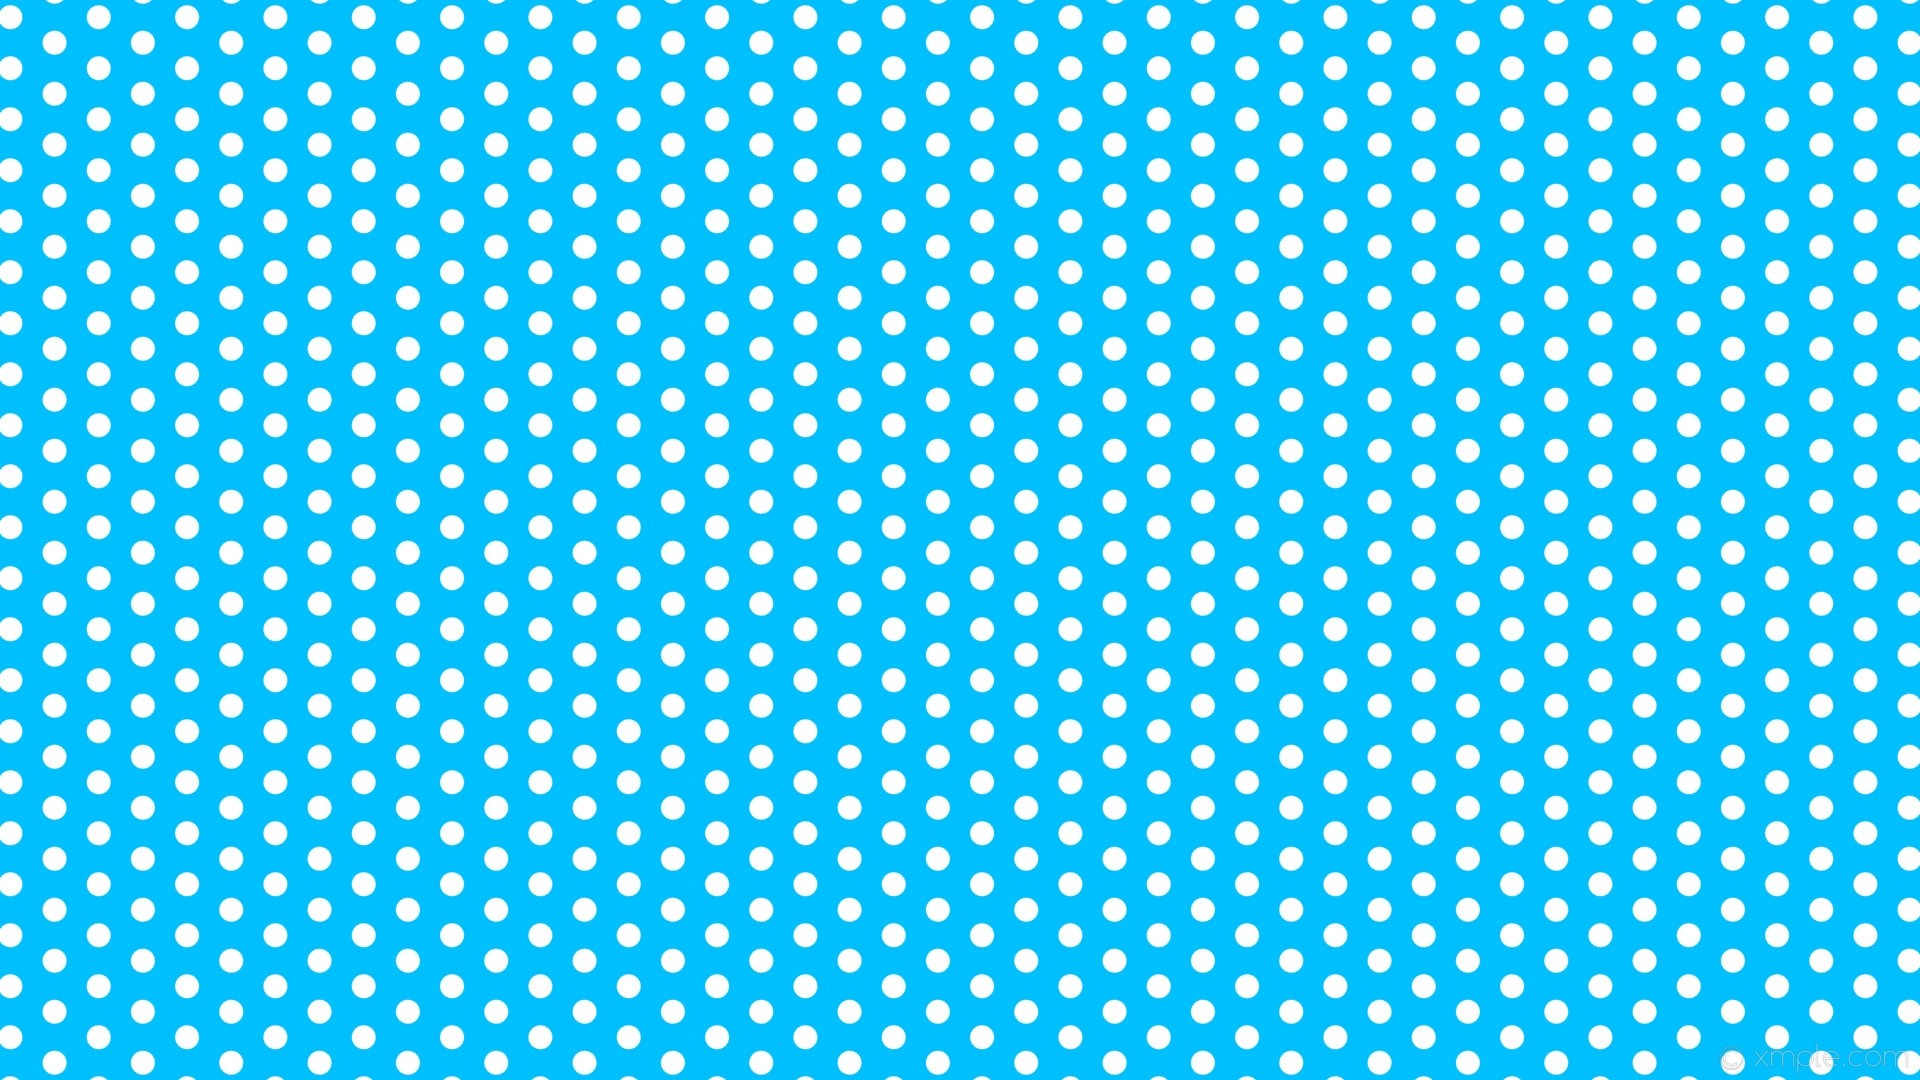 Polka Dot HD Wallpaper